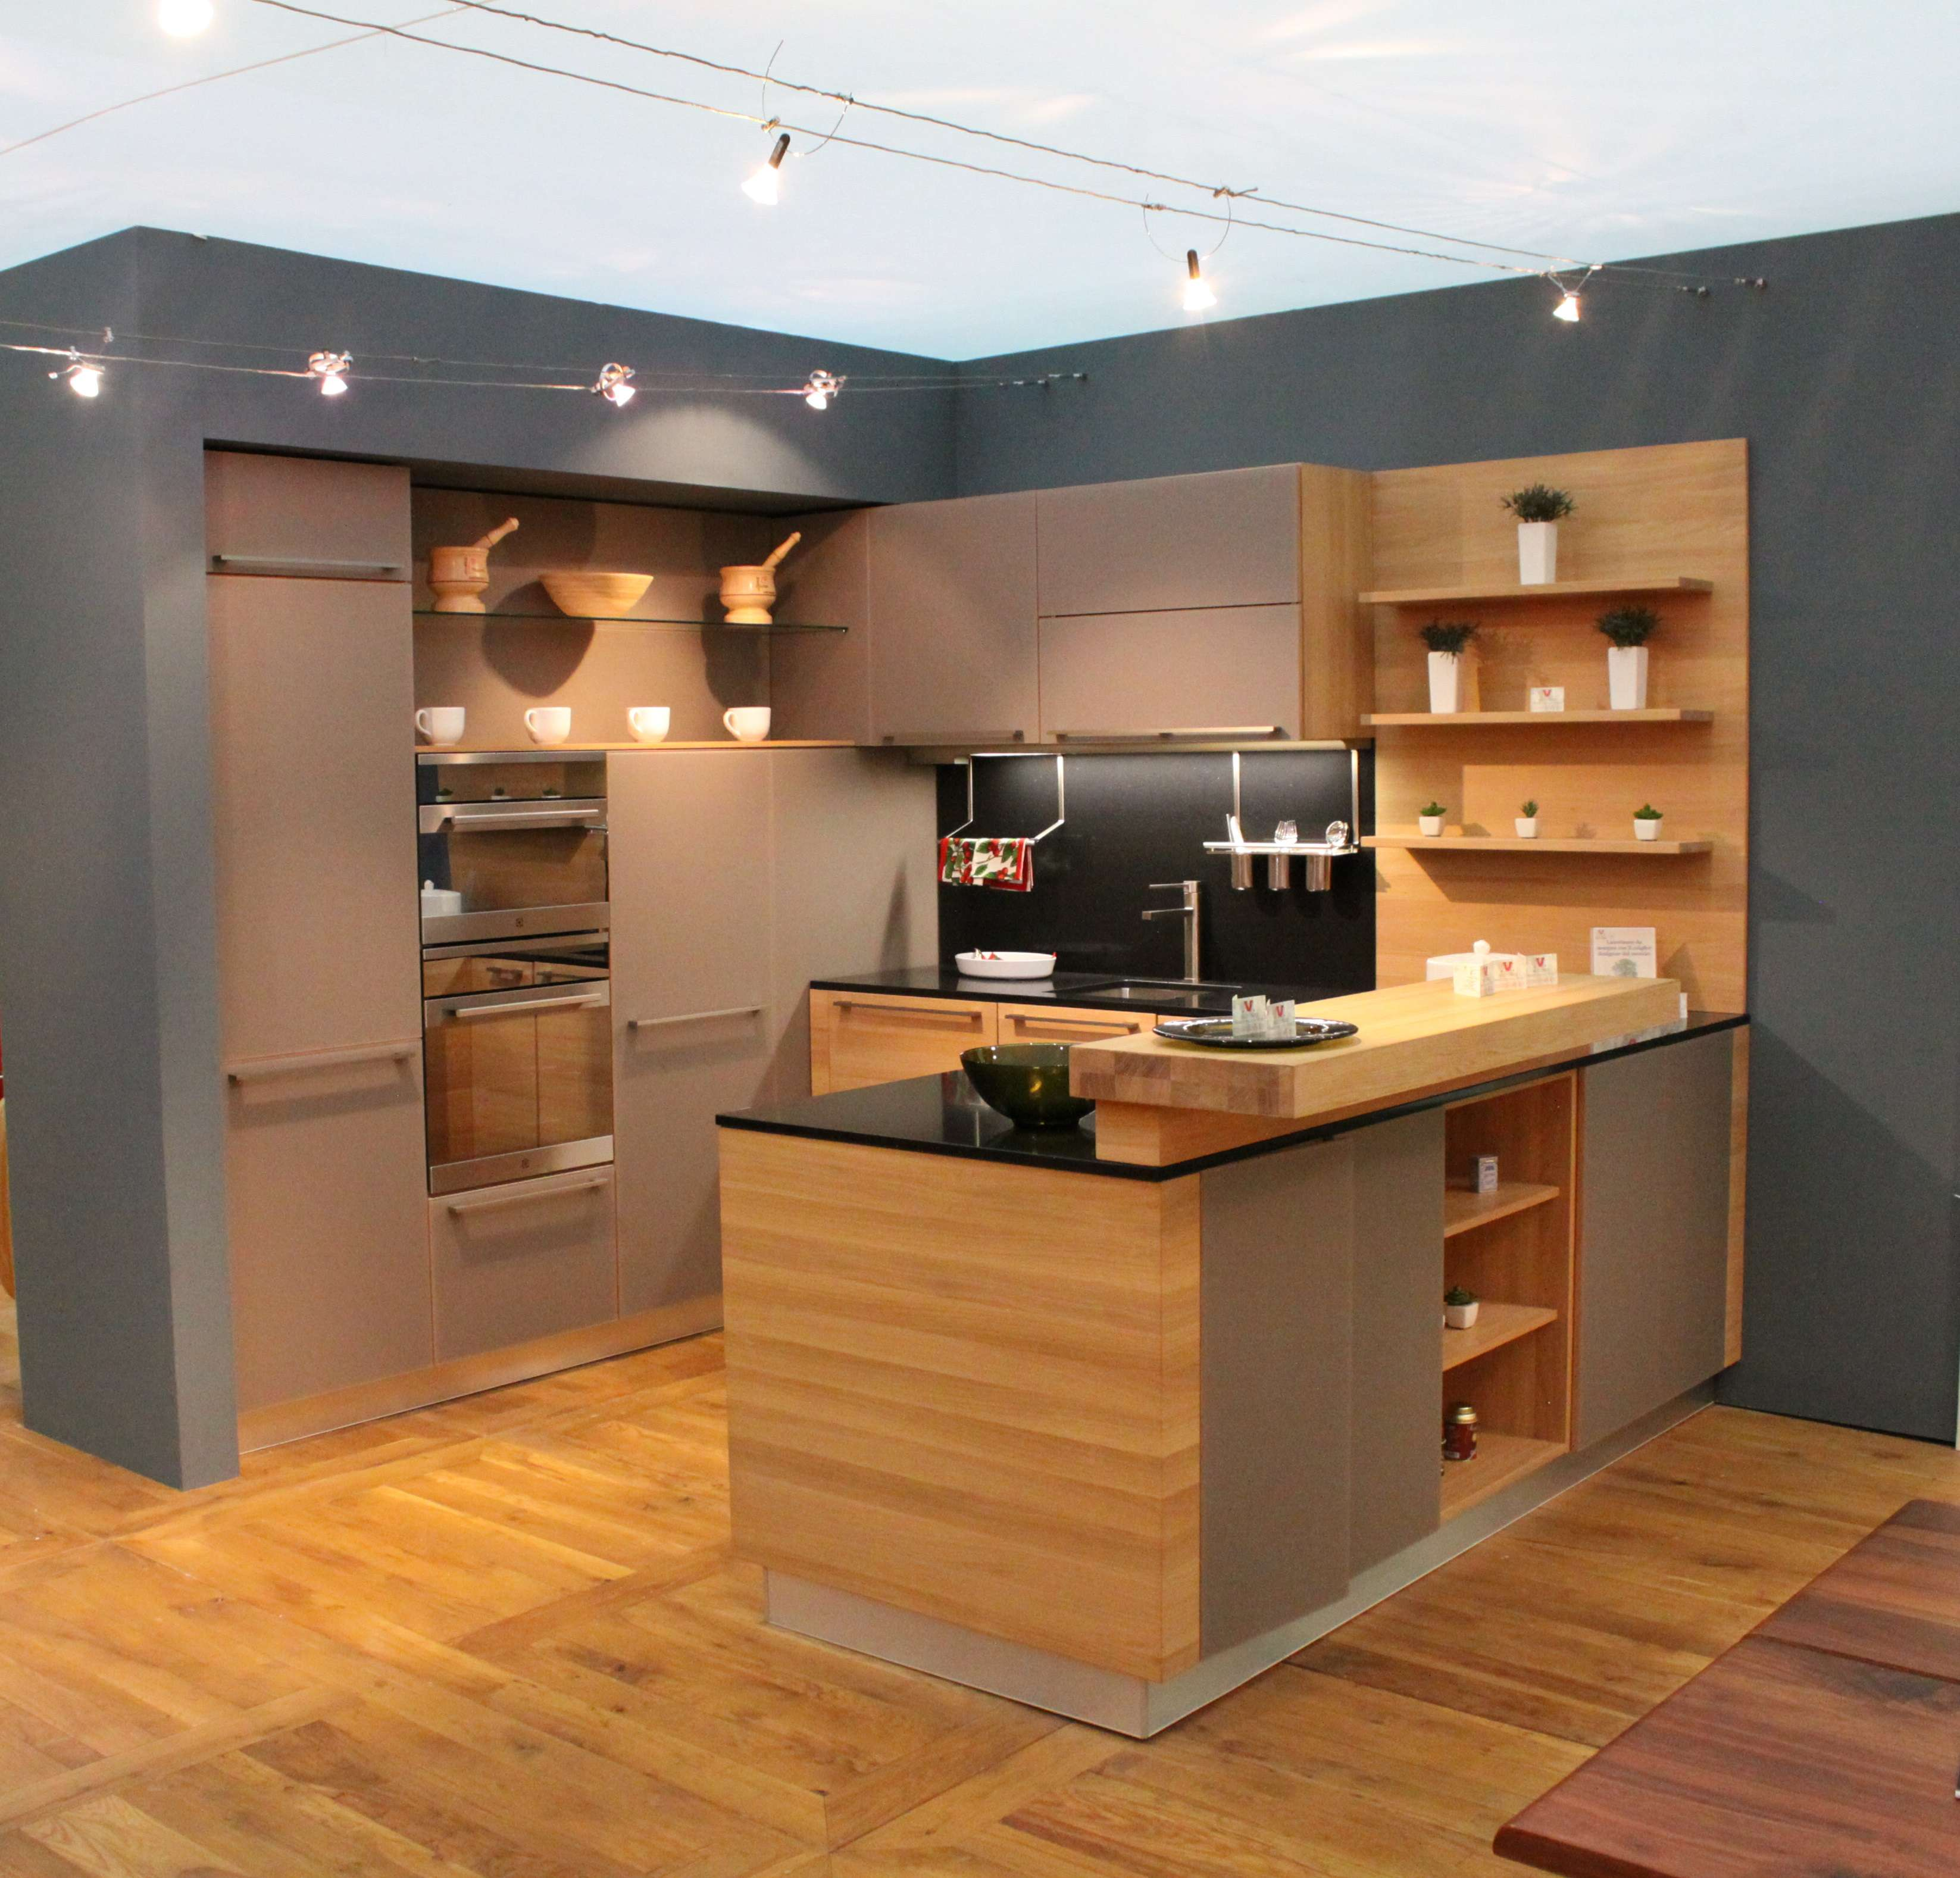 Cucina rovere team7 for Cucine in rovere